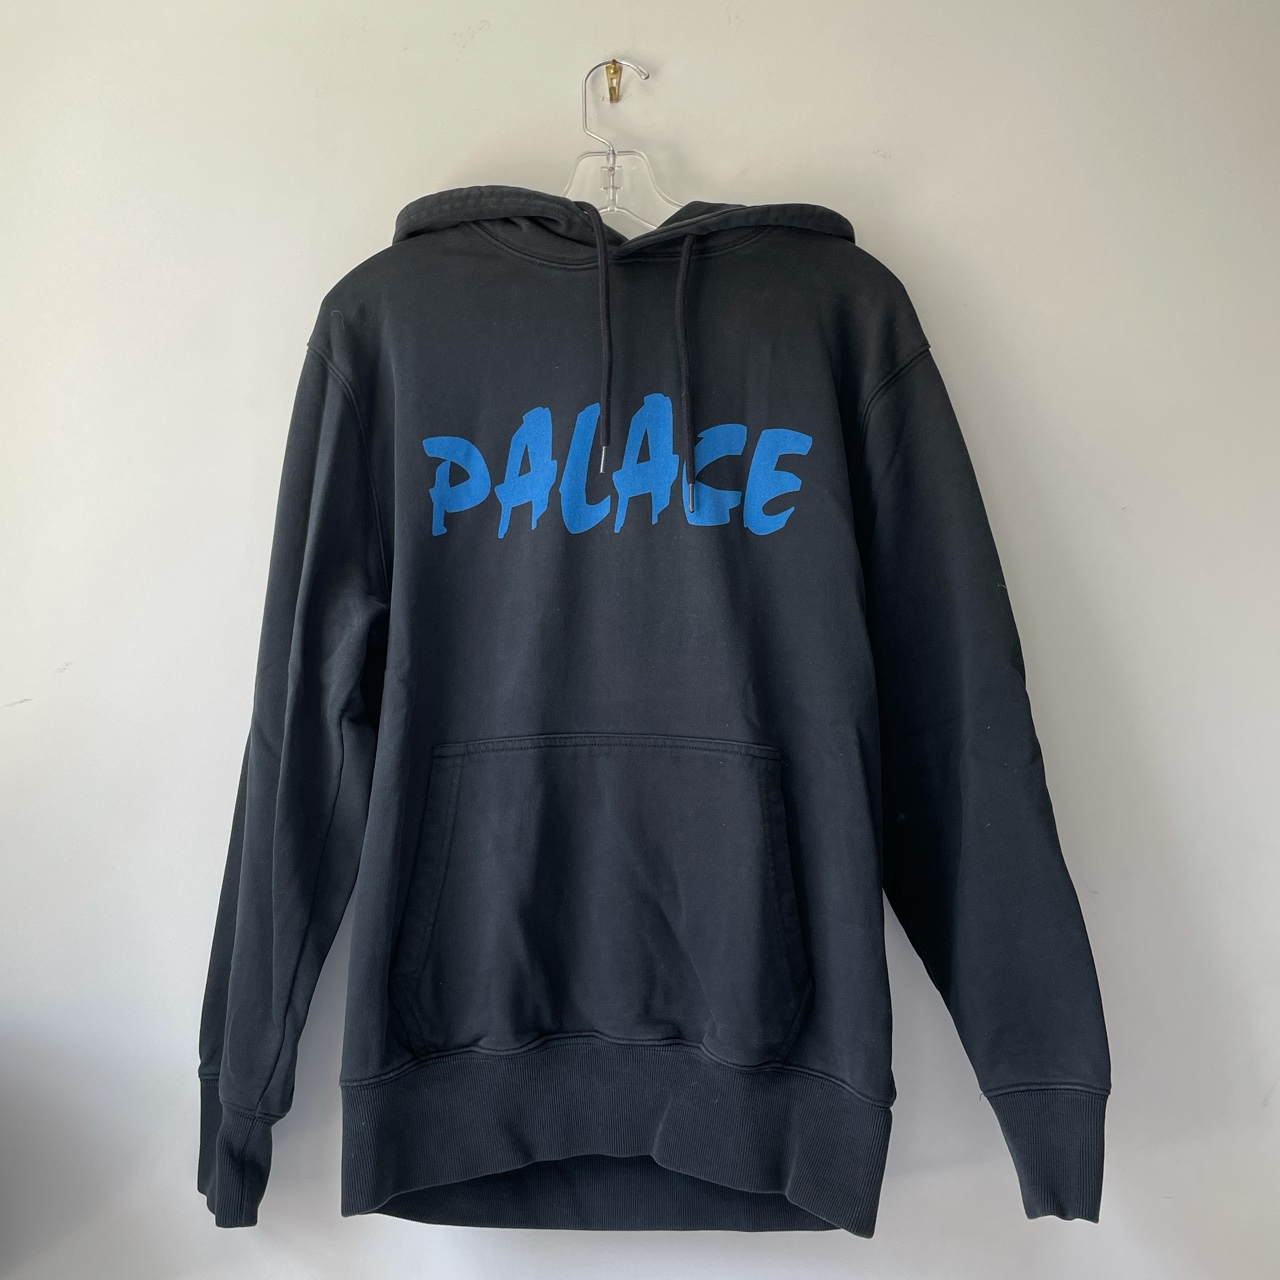 Product Image 1 - Palace palazer hoodie in black